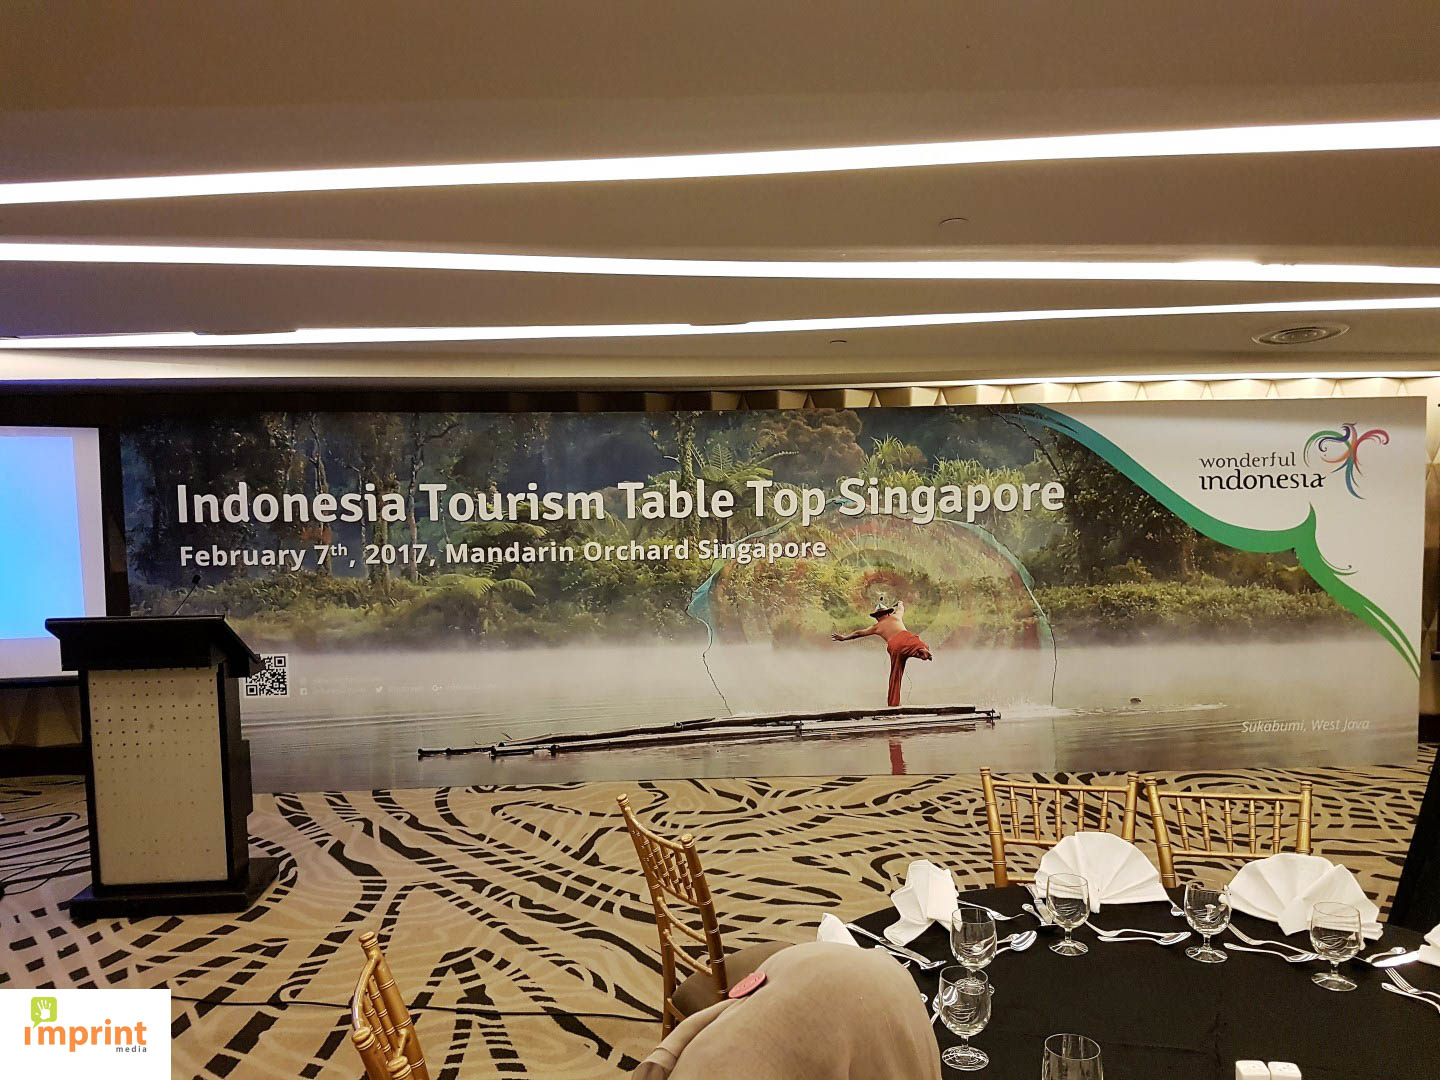 Indonesia Tourism Table Top backdrop by Imprint Media